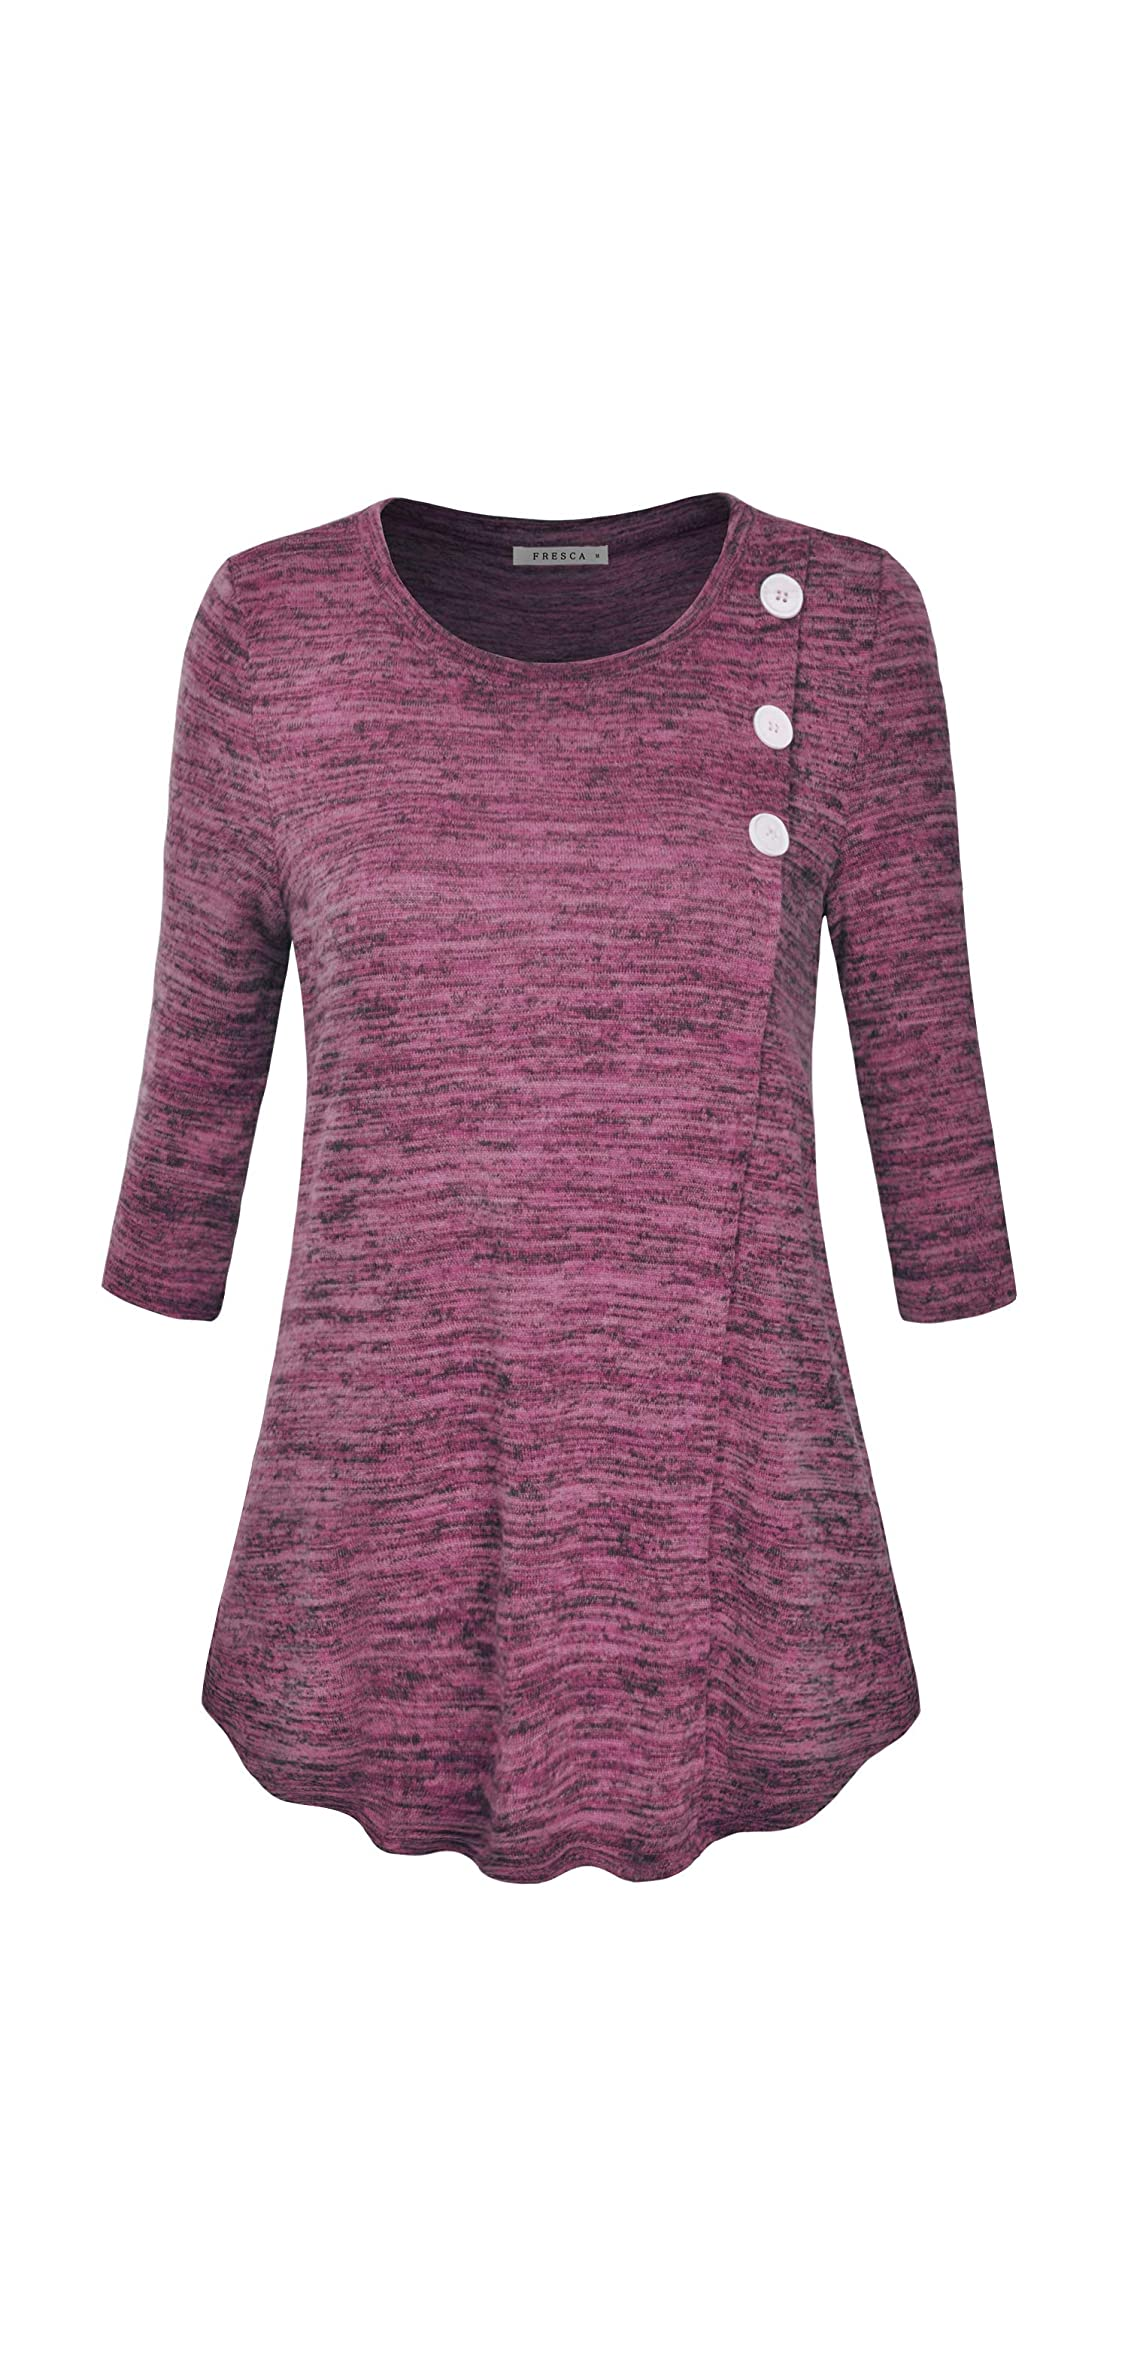 Womens Casual V Neck/crew Neck Stretchy Pleated Flowy